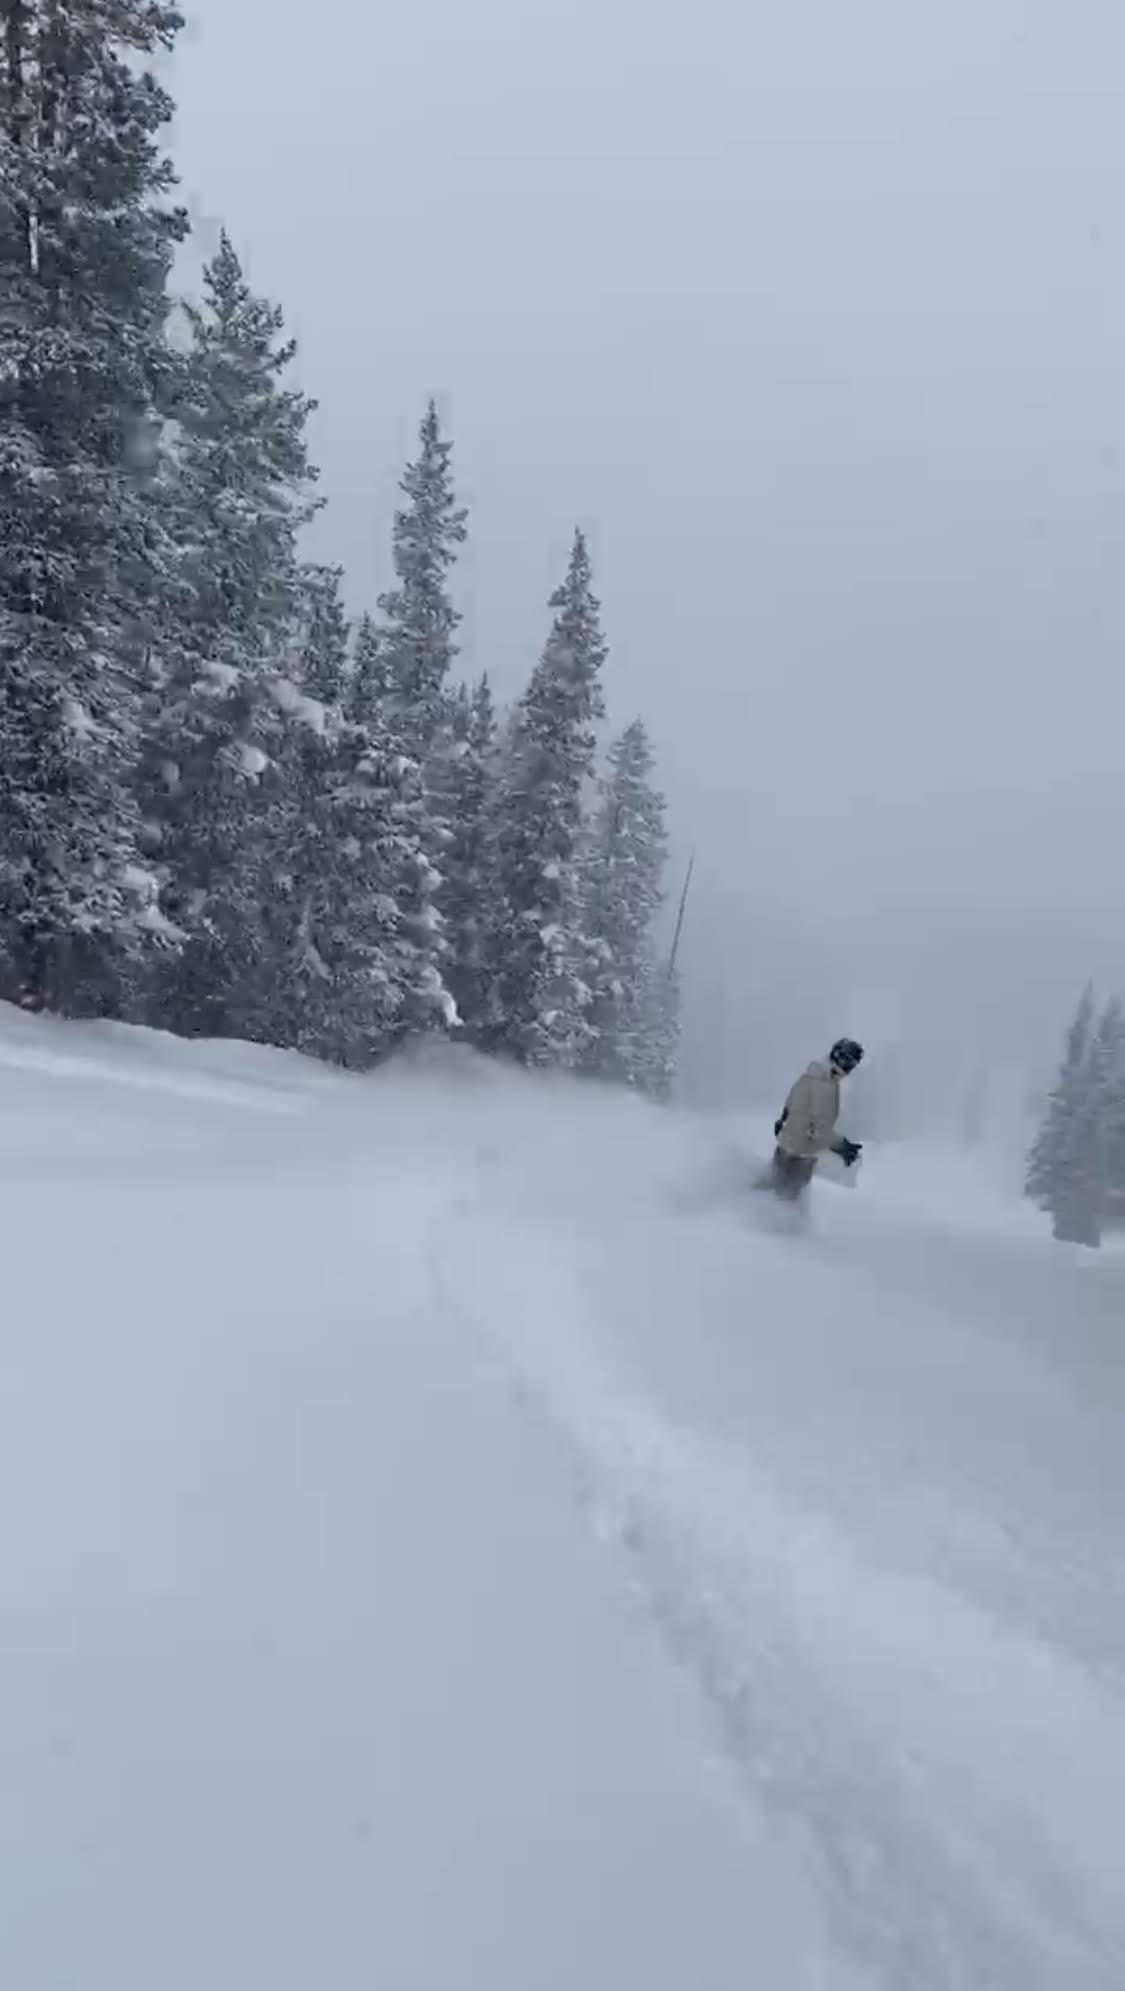 Joe riding the pow at Copper Mountain